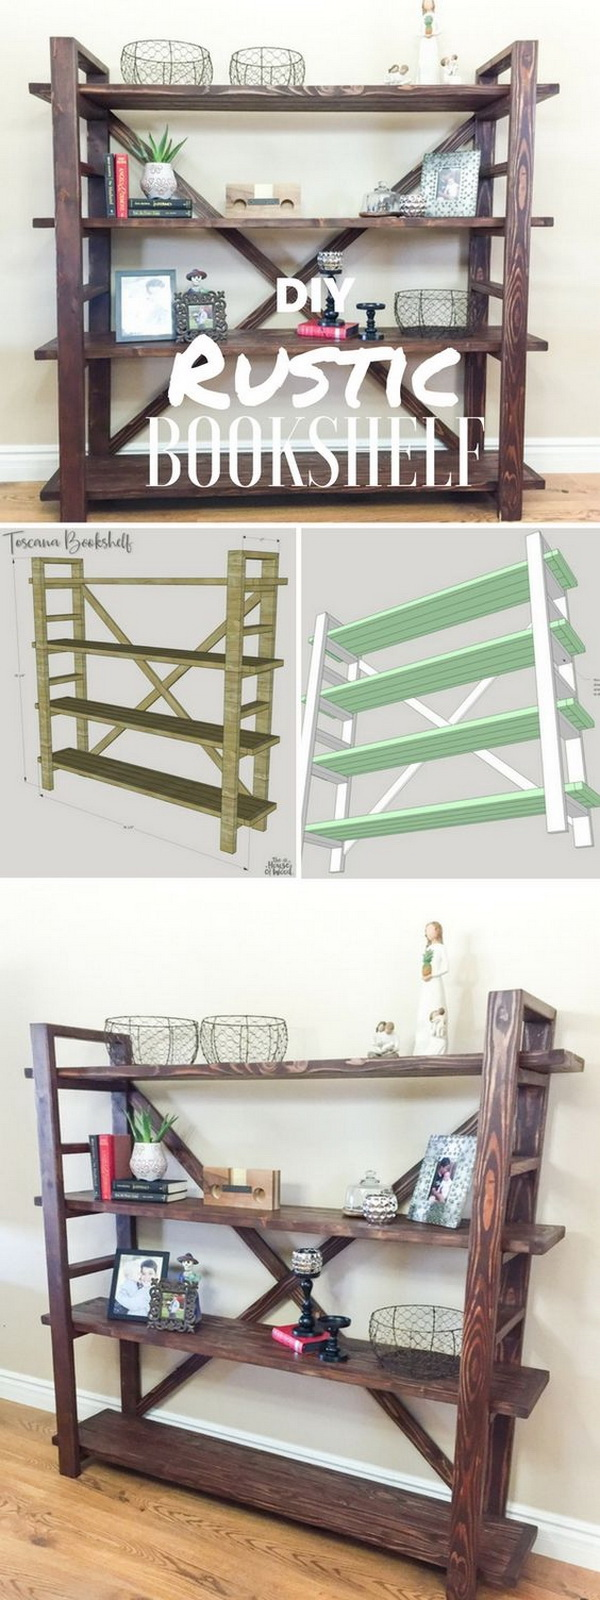 DIY Rustic Bookshelf. A beautiful way to display your awesome collection of books and magazines and other odds and ends with this rustic bookshelf that you can make at home!